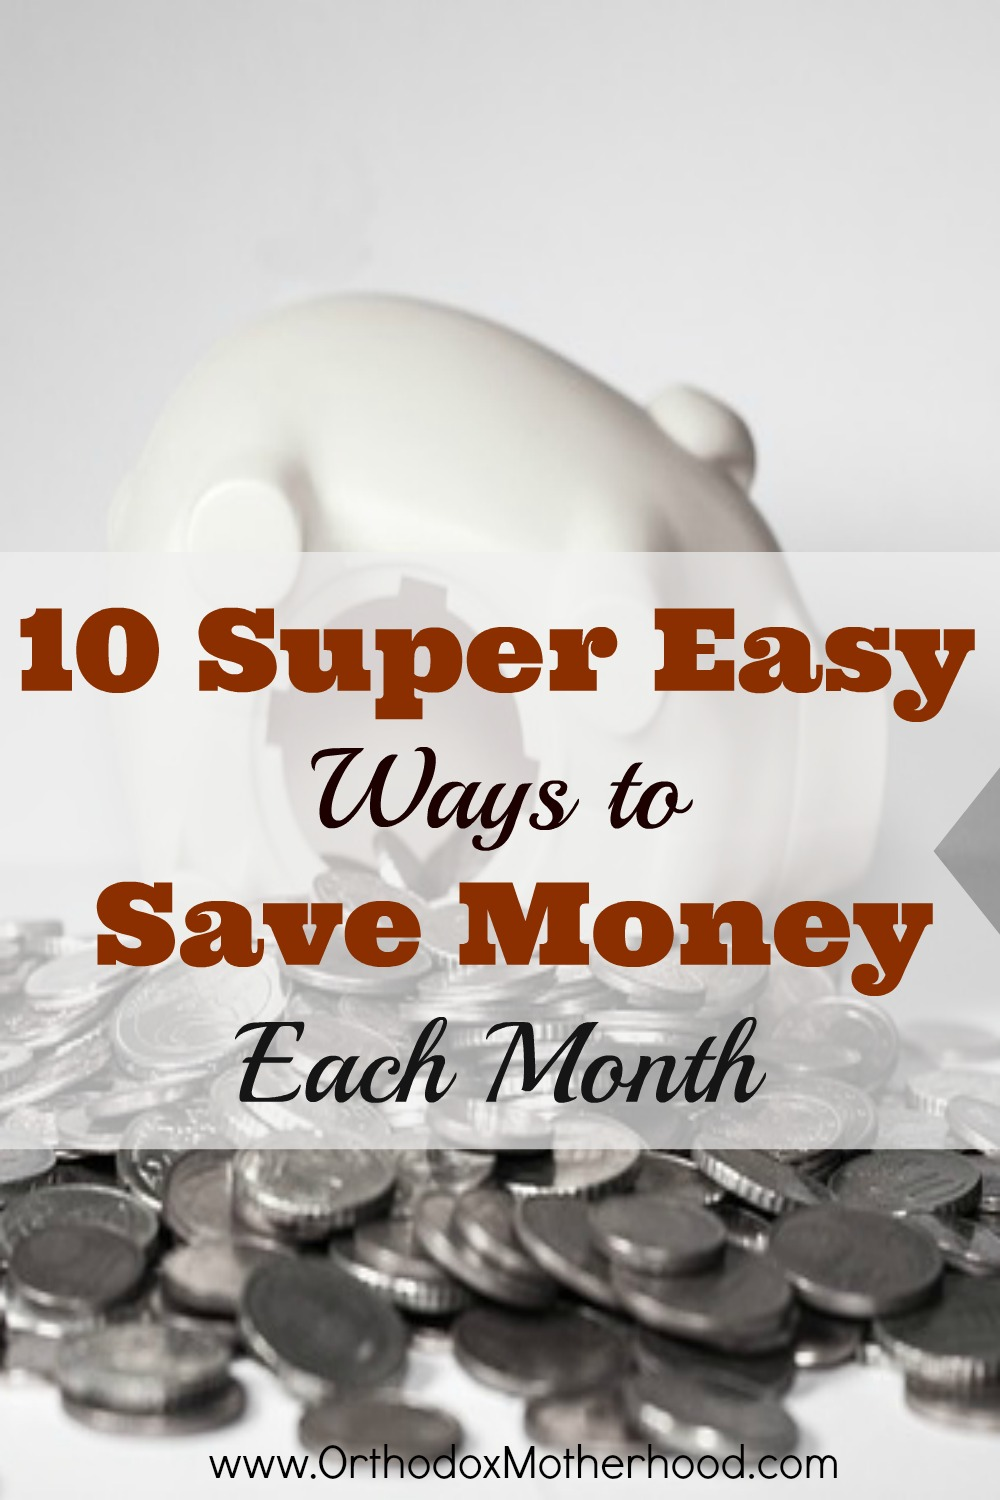 10 Easy Got7 Casual Outfits Kpopmap: 10 Super Easy Ways To Save Money Each Month